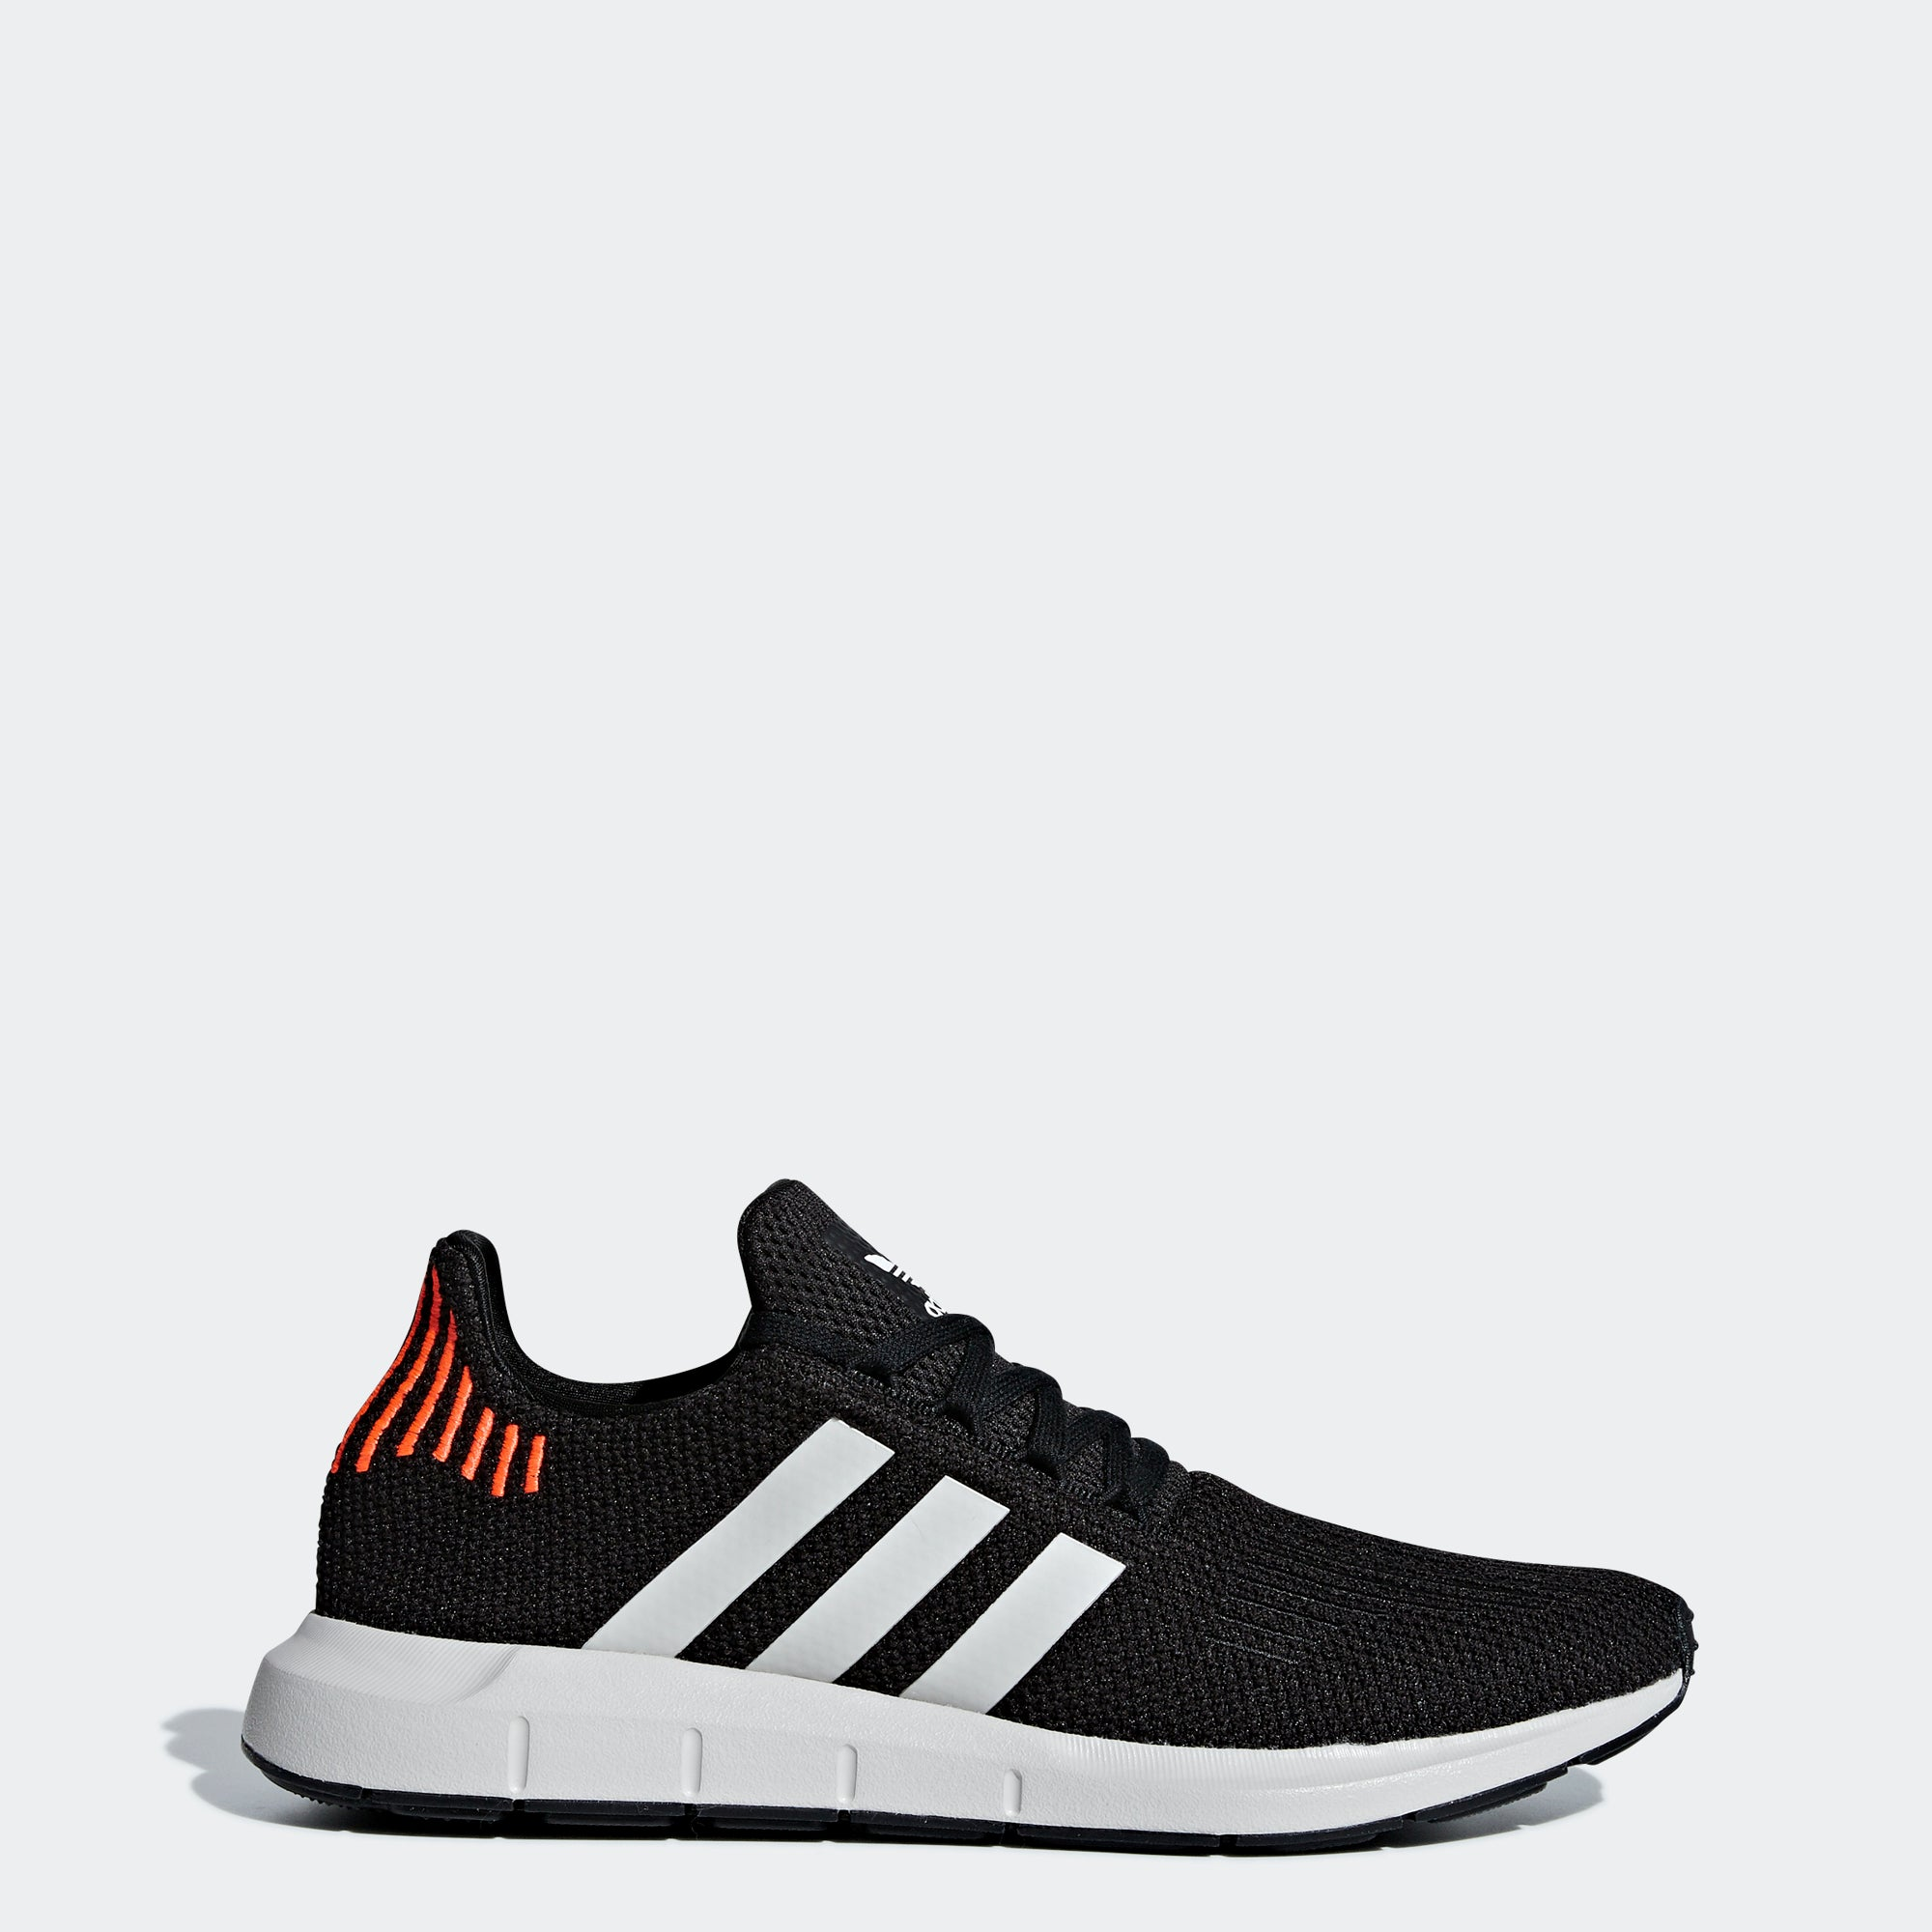 f12c50abf78ab Men s adidas Originals Swift Run Shoes Black Orange